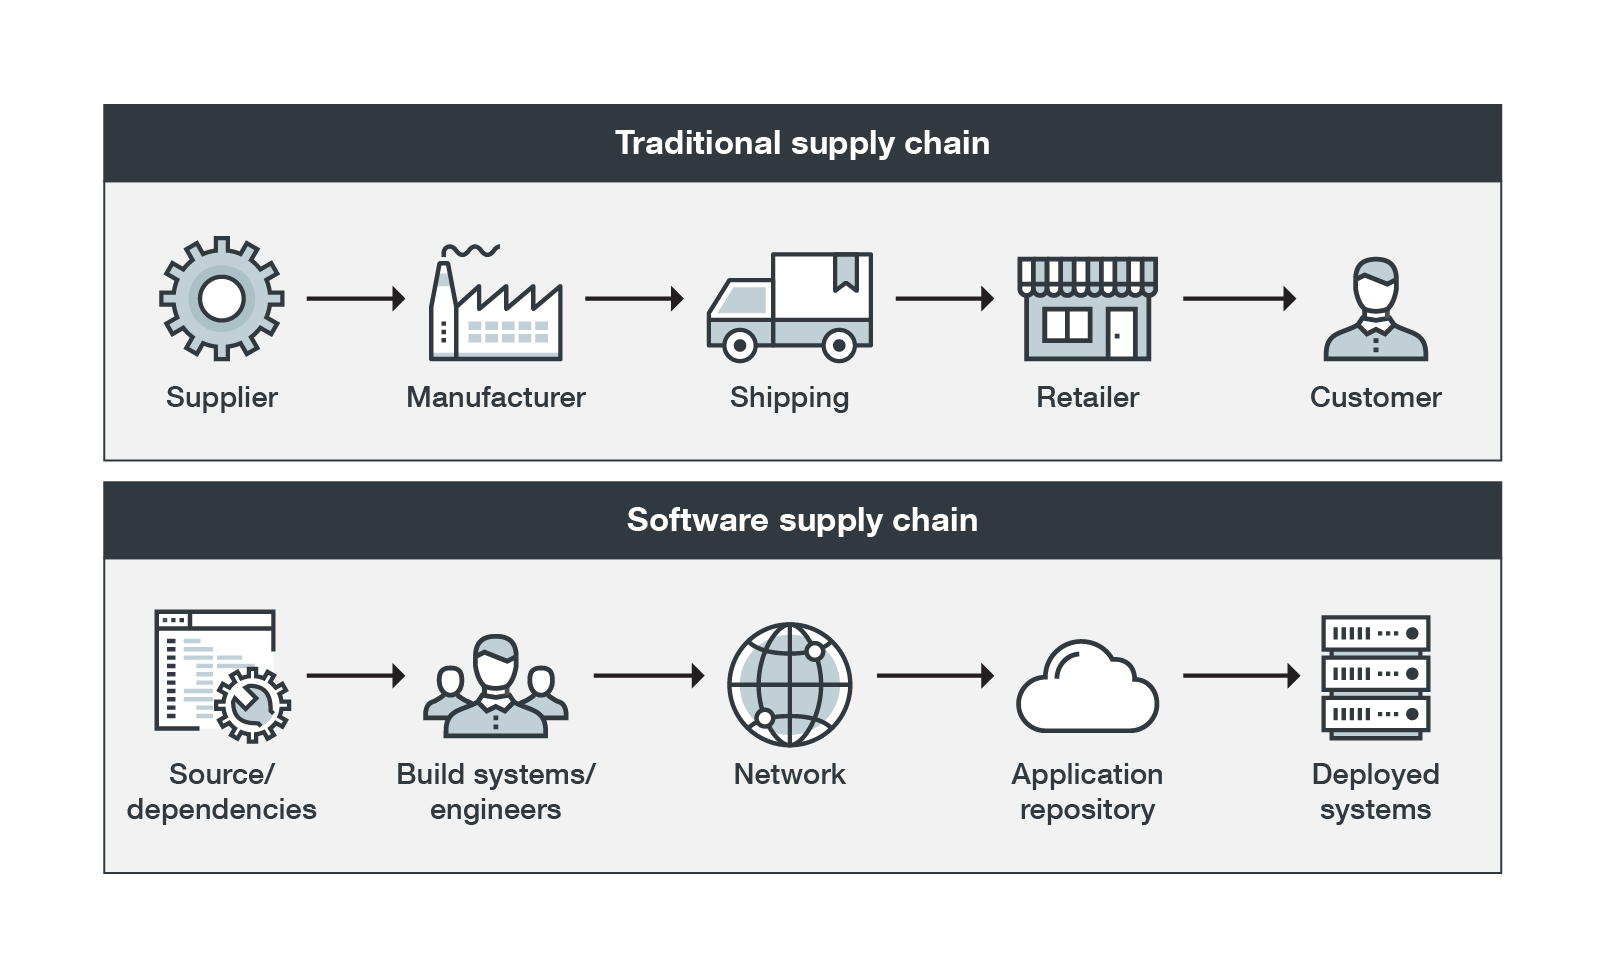 Comparison between a traditional supply chain and a software supply chain